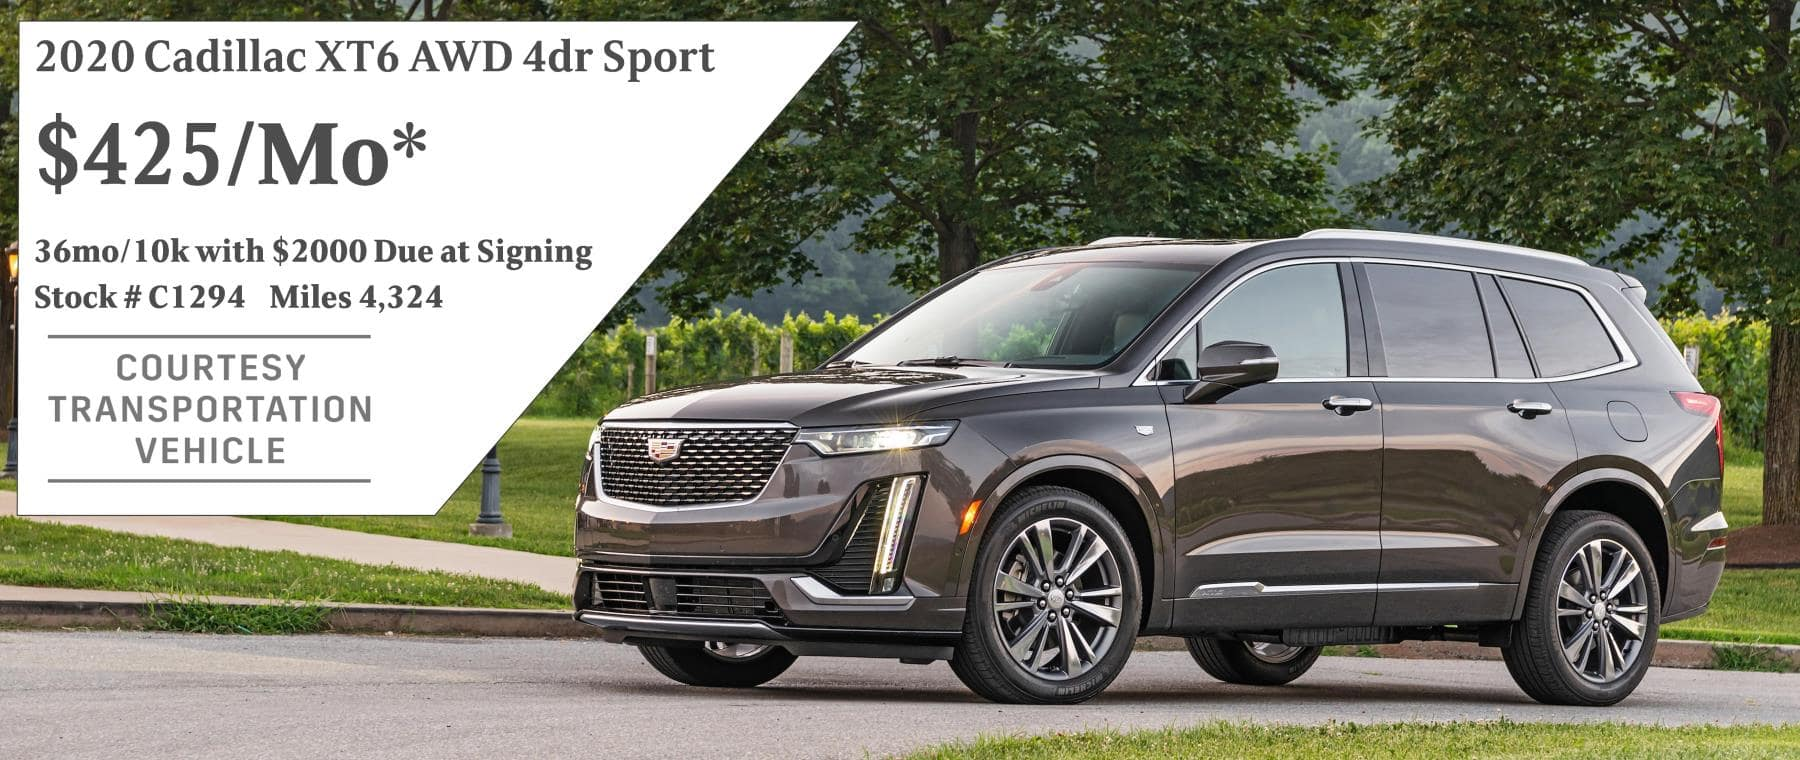 September 2020 XT6 Lease Offer $425/mo